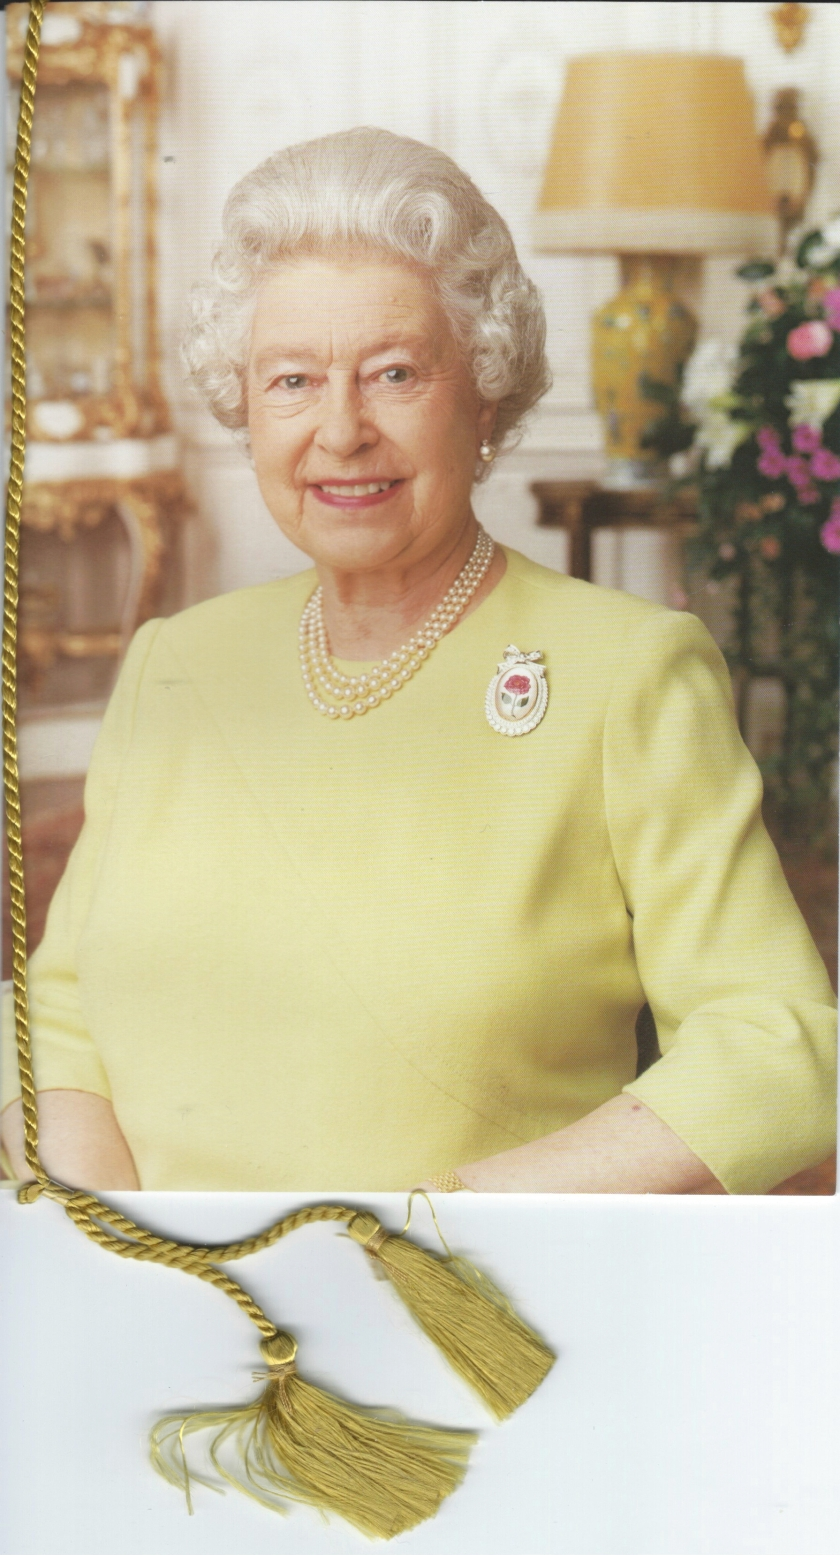 The front of the Queen's 100th birthday card to my Nan, showing Her Majesty smiling while wearing a light green top with a white brooch and a necklace with 3 rows of beads. A soft gold tassel hangs from the top left corner of the card.